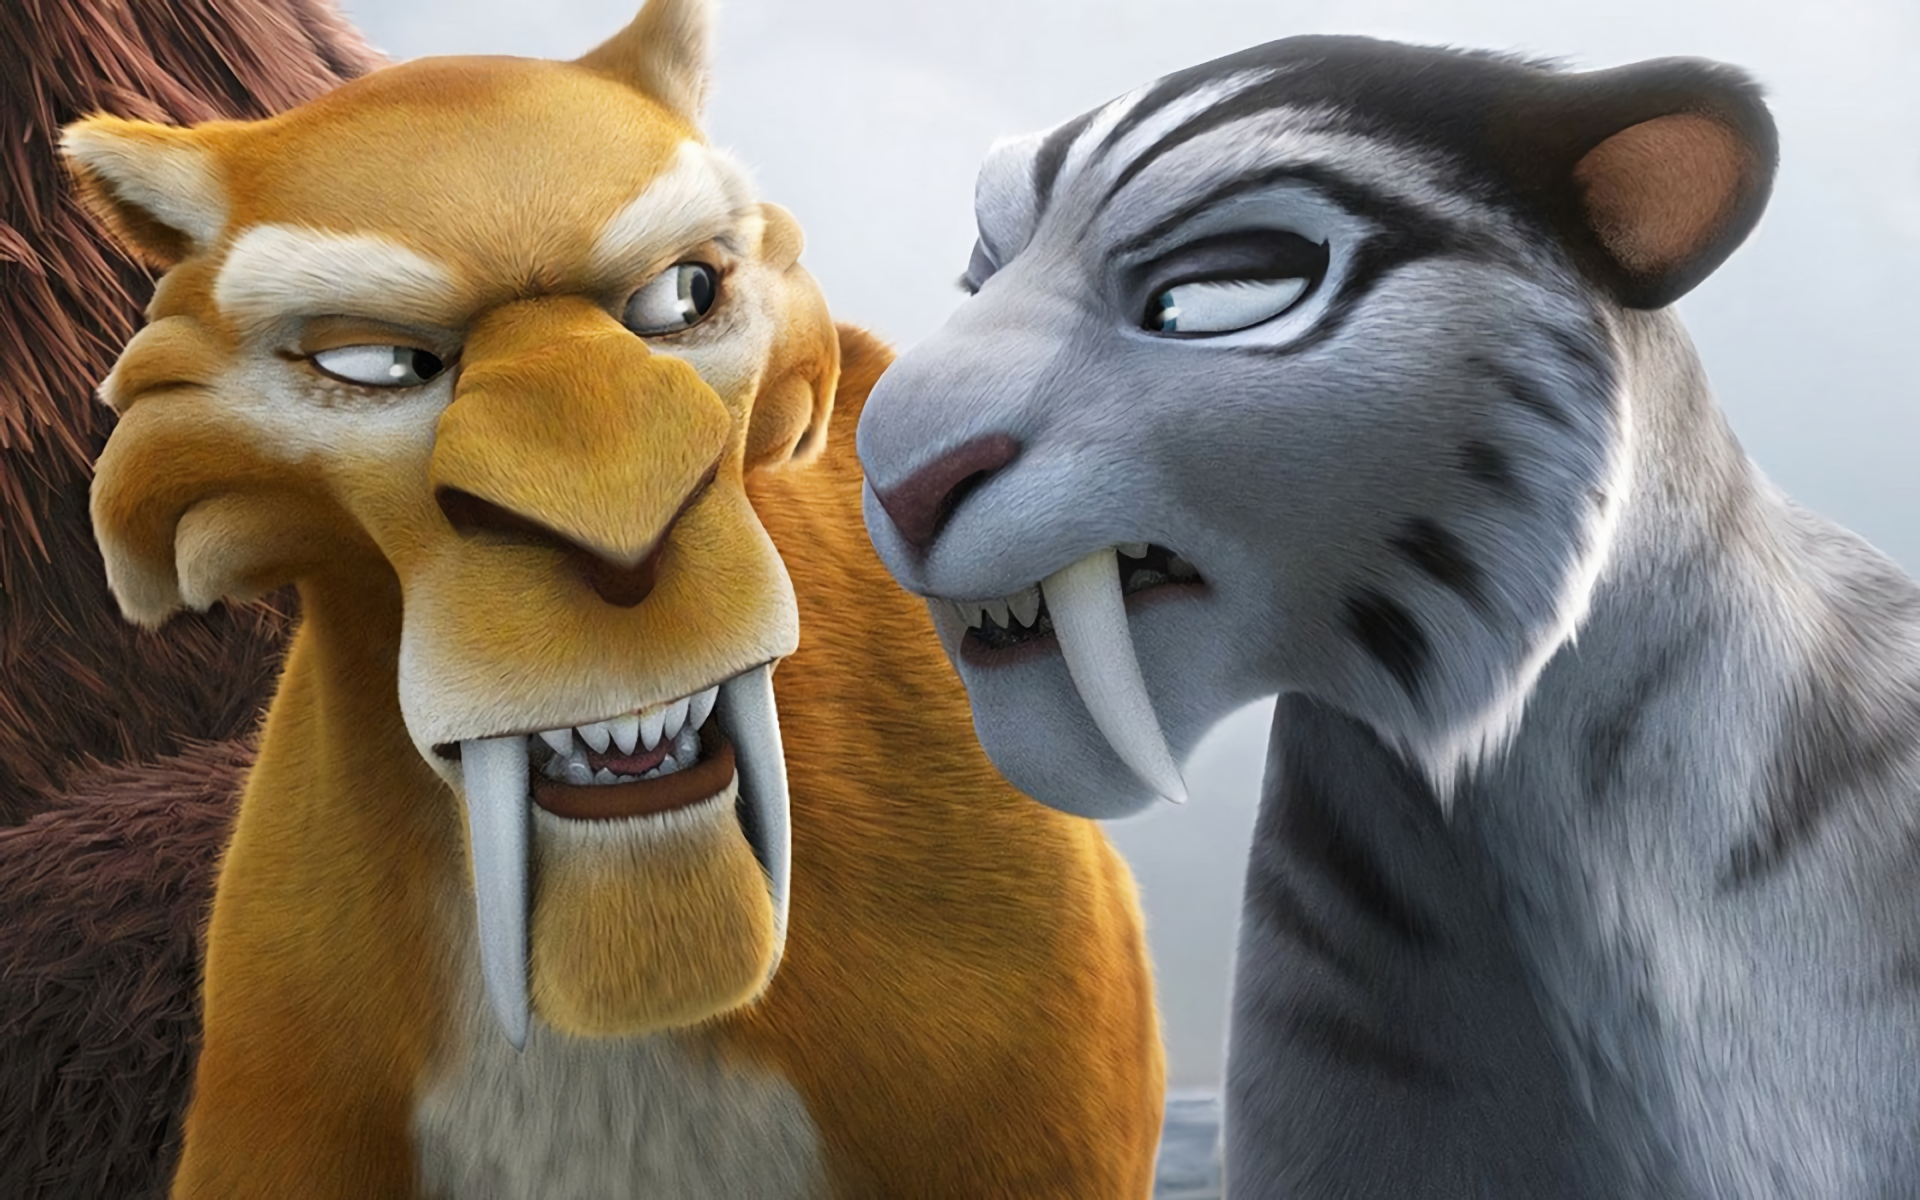 Ice Age: Continental Drift wallpapers and images